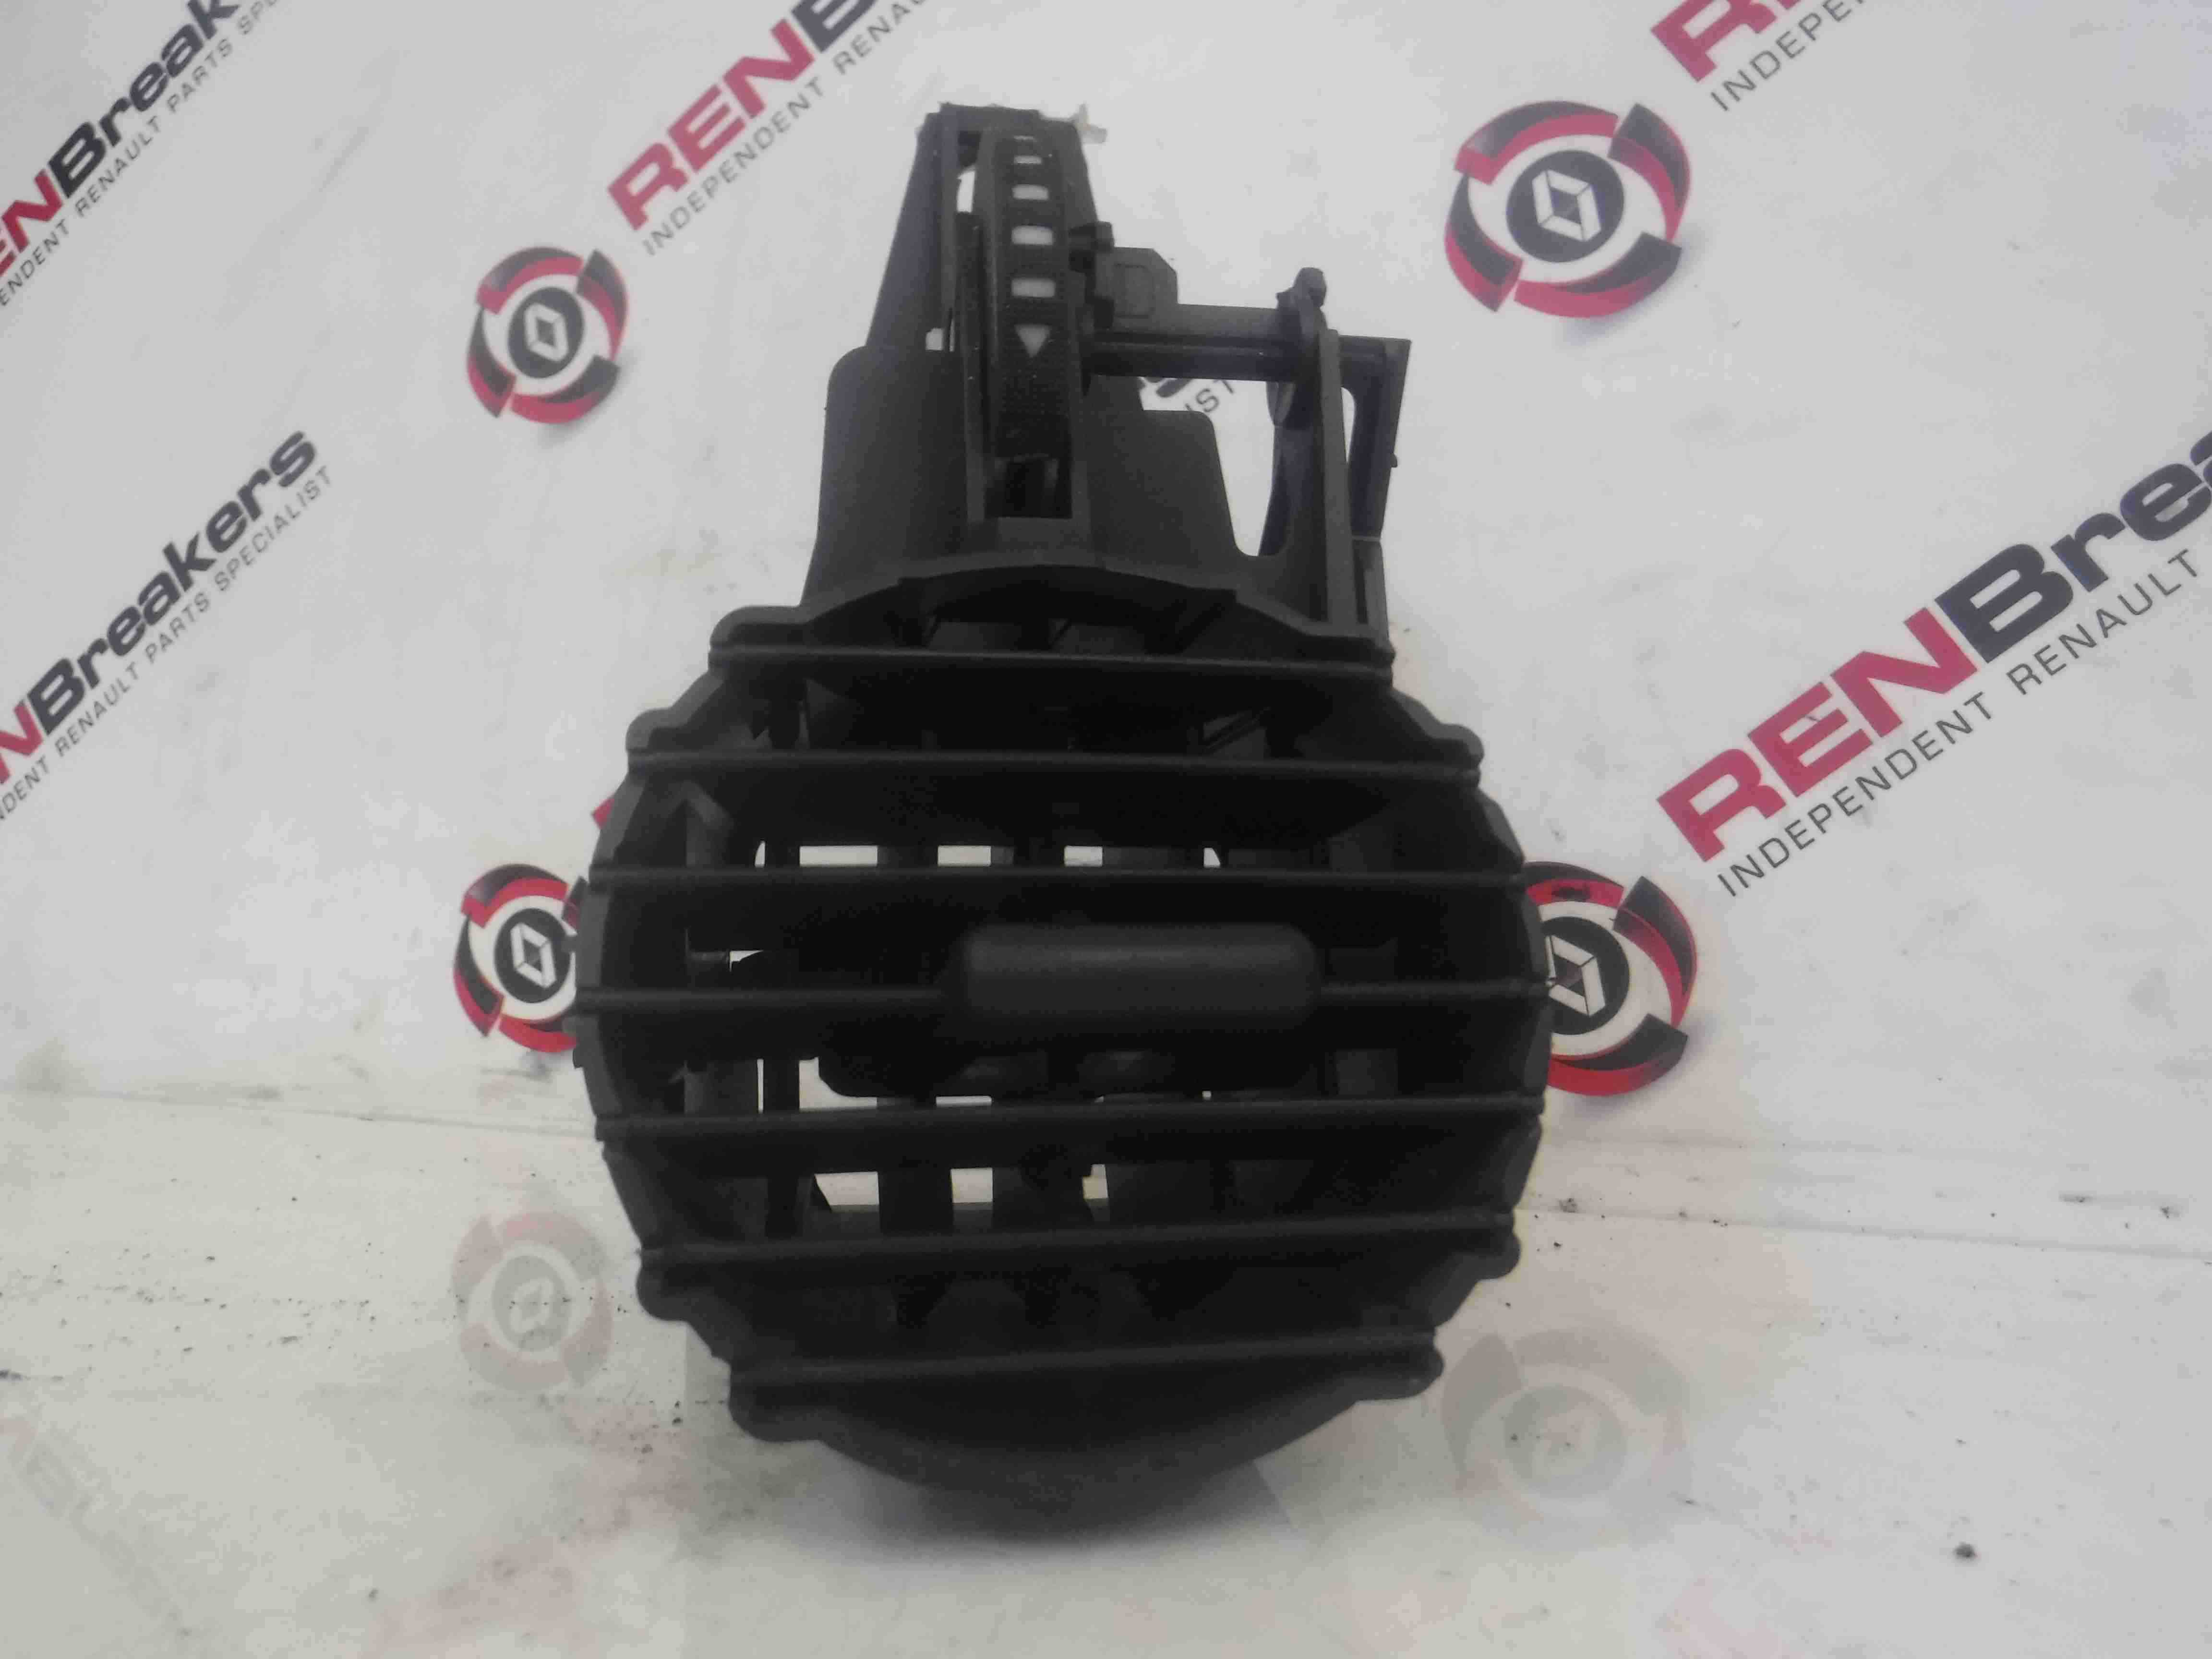 Renault Espace 2003-2013 Drivers OSF Front Heater Vent